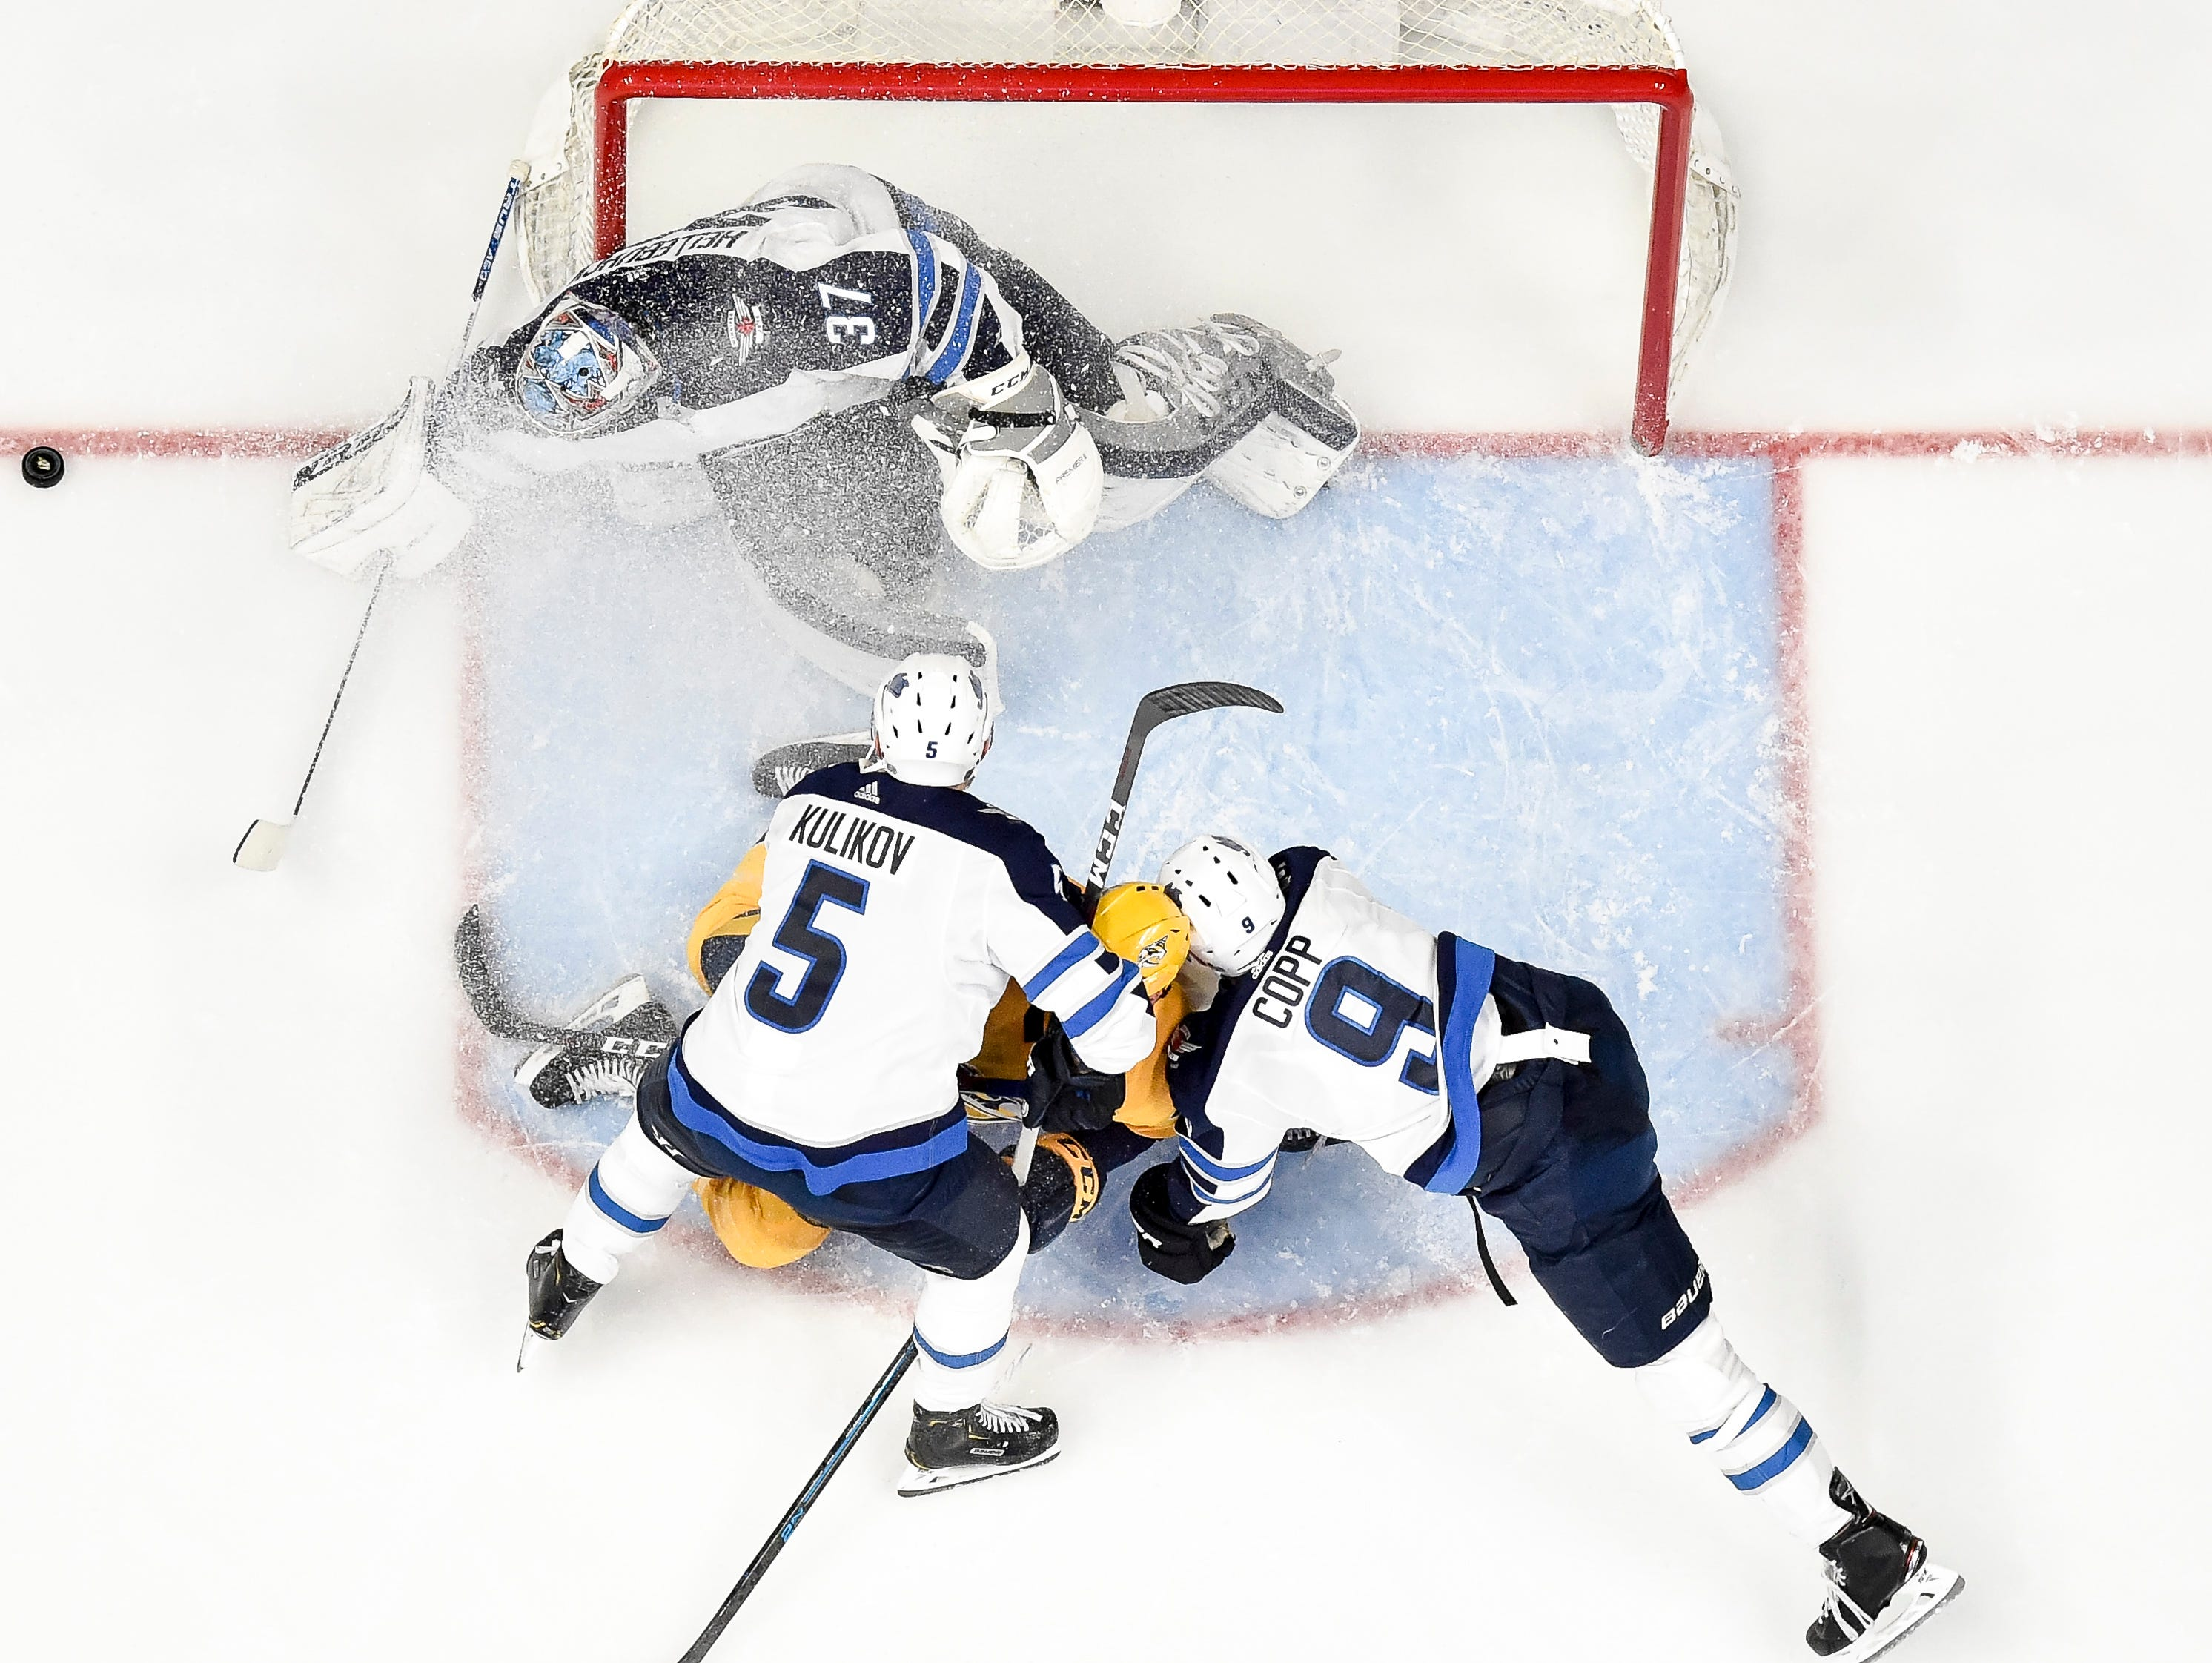 Winnipeg Jets goaltender Connor Hellebuyck (37), defenseman Dmitry Kulikov (5), and center Andrew Copp (9) defend against Nashville Predators center Colton Sissons (10) during the second period at Bridgestone Arena in Nashville, Tenn., Thursday, Jan. 17, 2019.